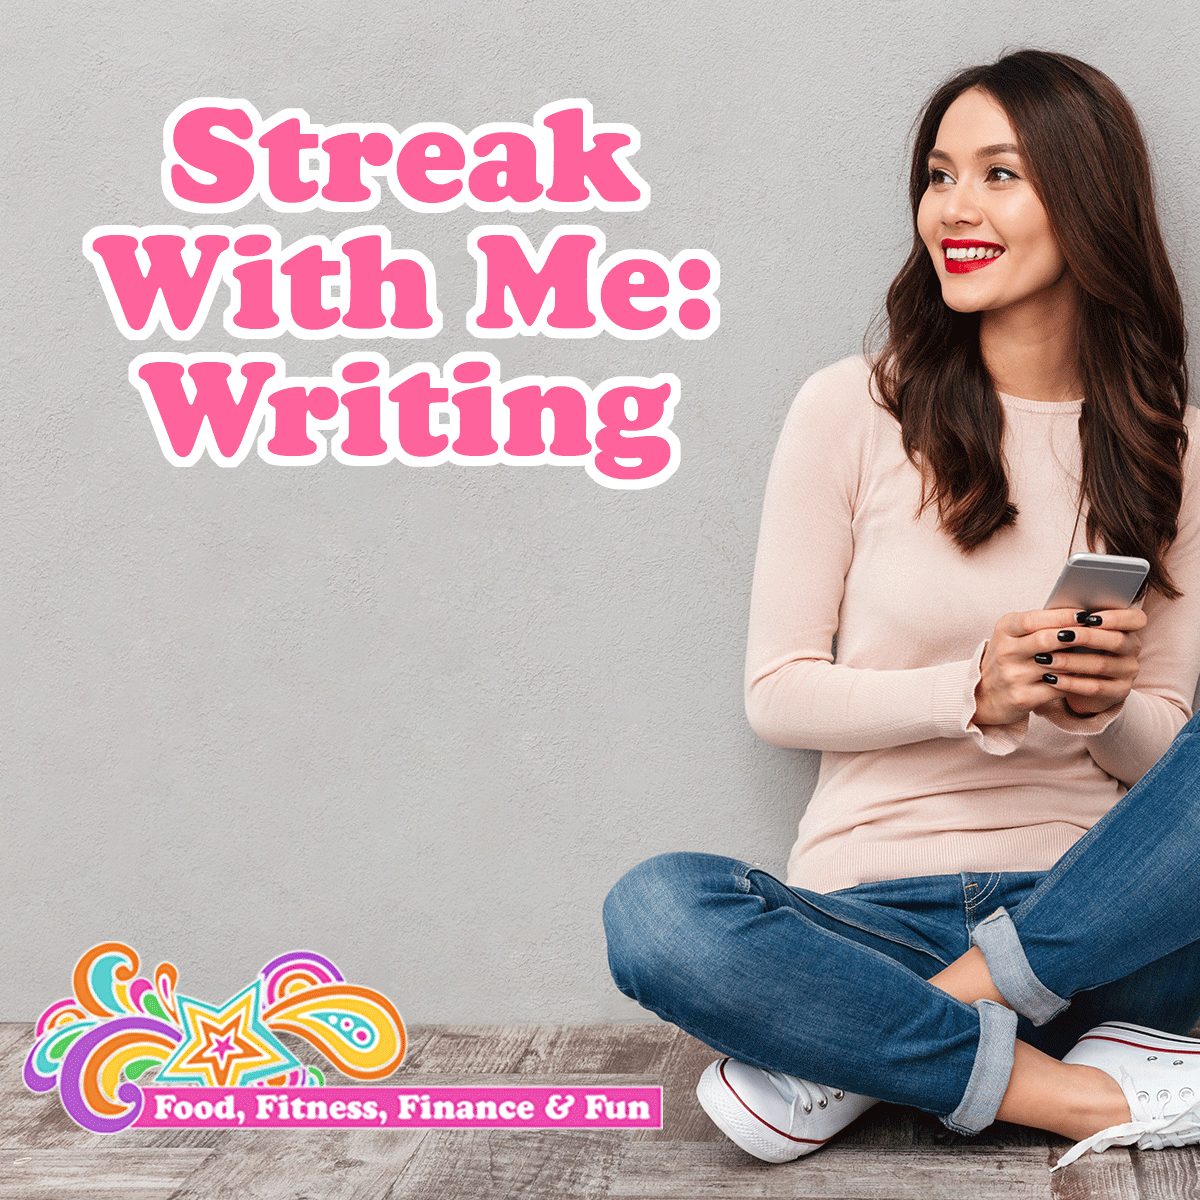 """Streak With Me: Writing ... Every month for the past 3 years I have been doing a """"streak"""". A streak is a daily activity I do for a certain amount of days to move me toward a healthy habit or something I want in my life."""